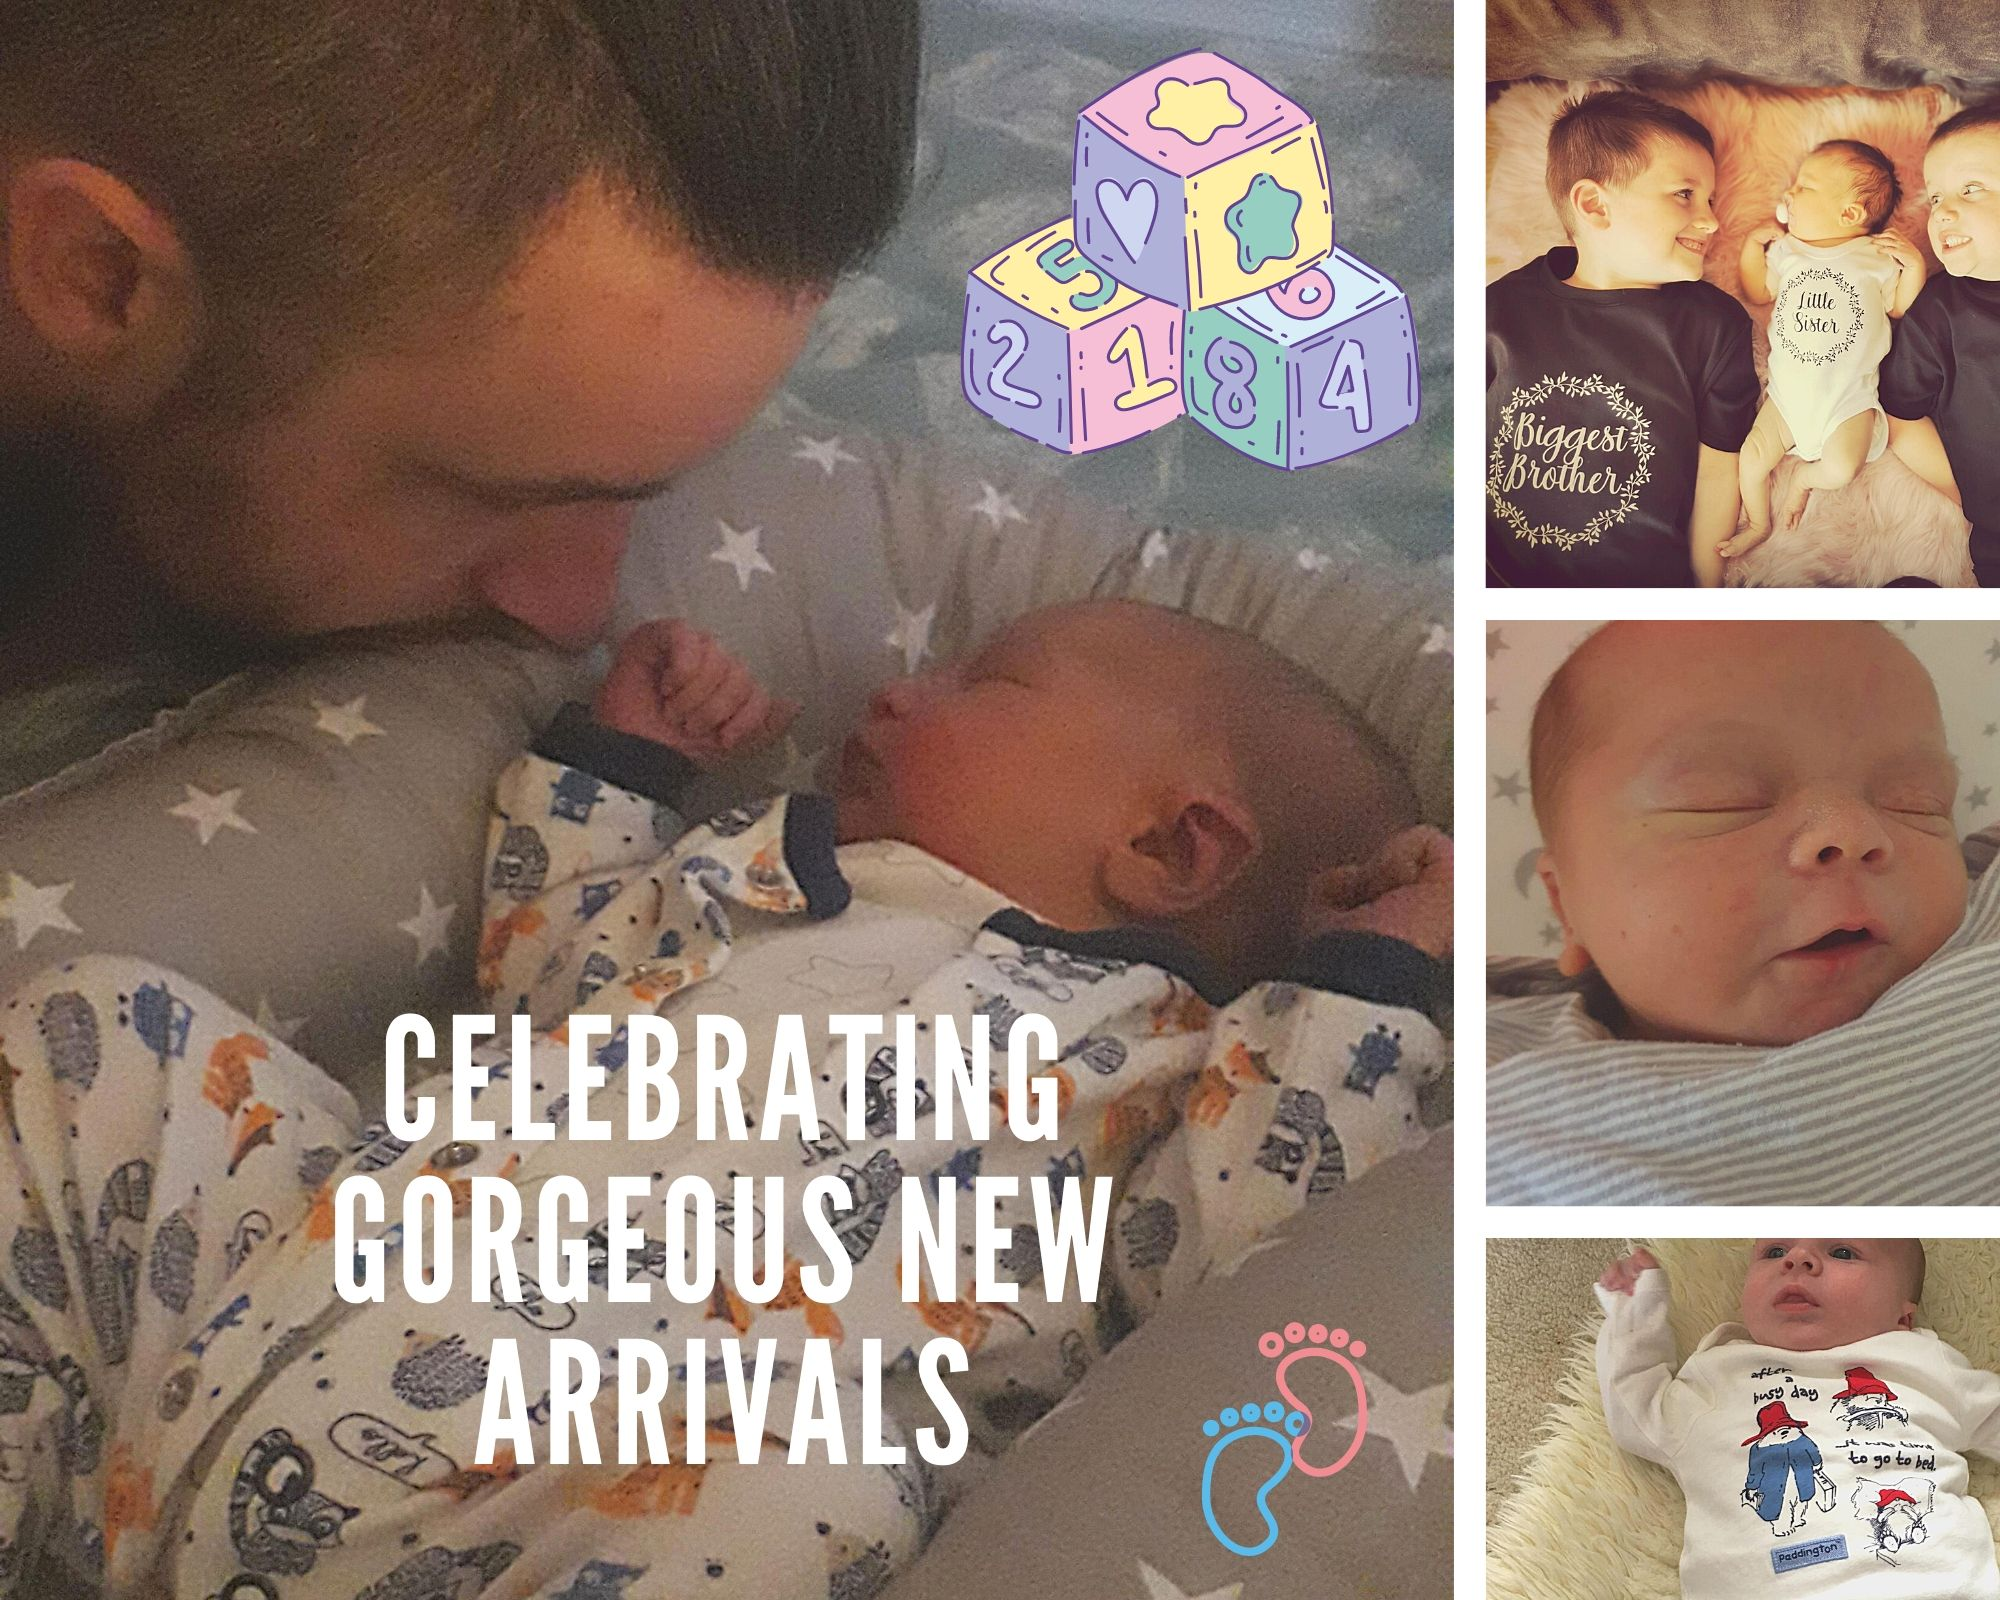 Celebrating newborn babies born to Weymouth and Dorchester parents